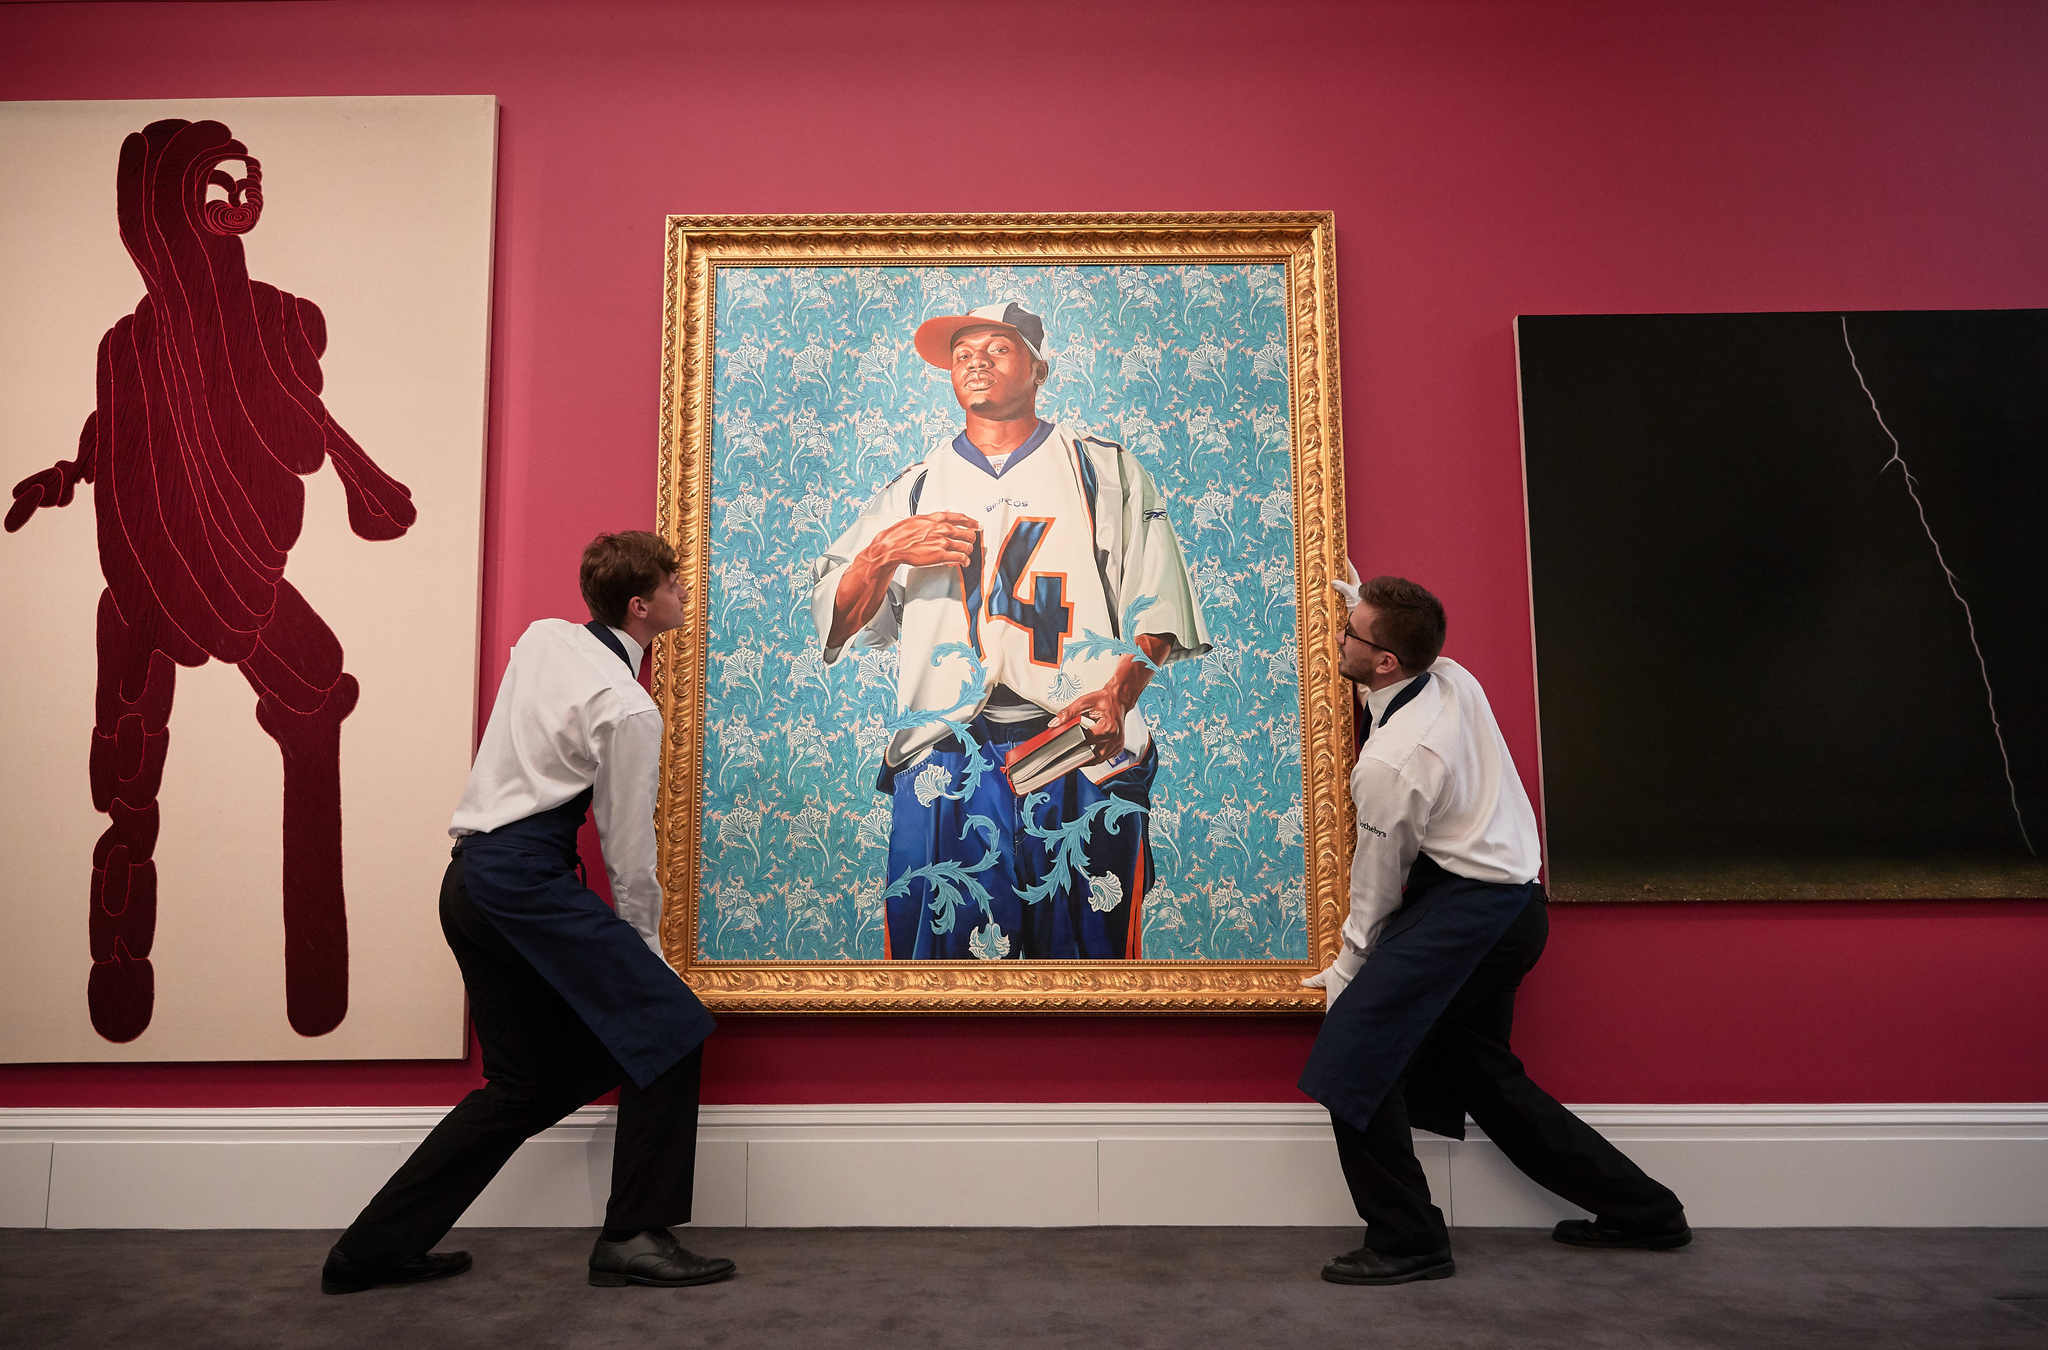 'St. Francis' by Kehinde Wiley goes on view at Sotheby's last month in London. (Getty Images for Sotheby's)